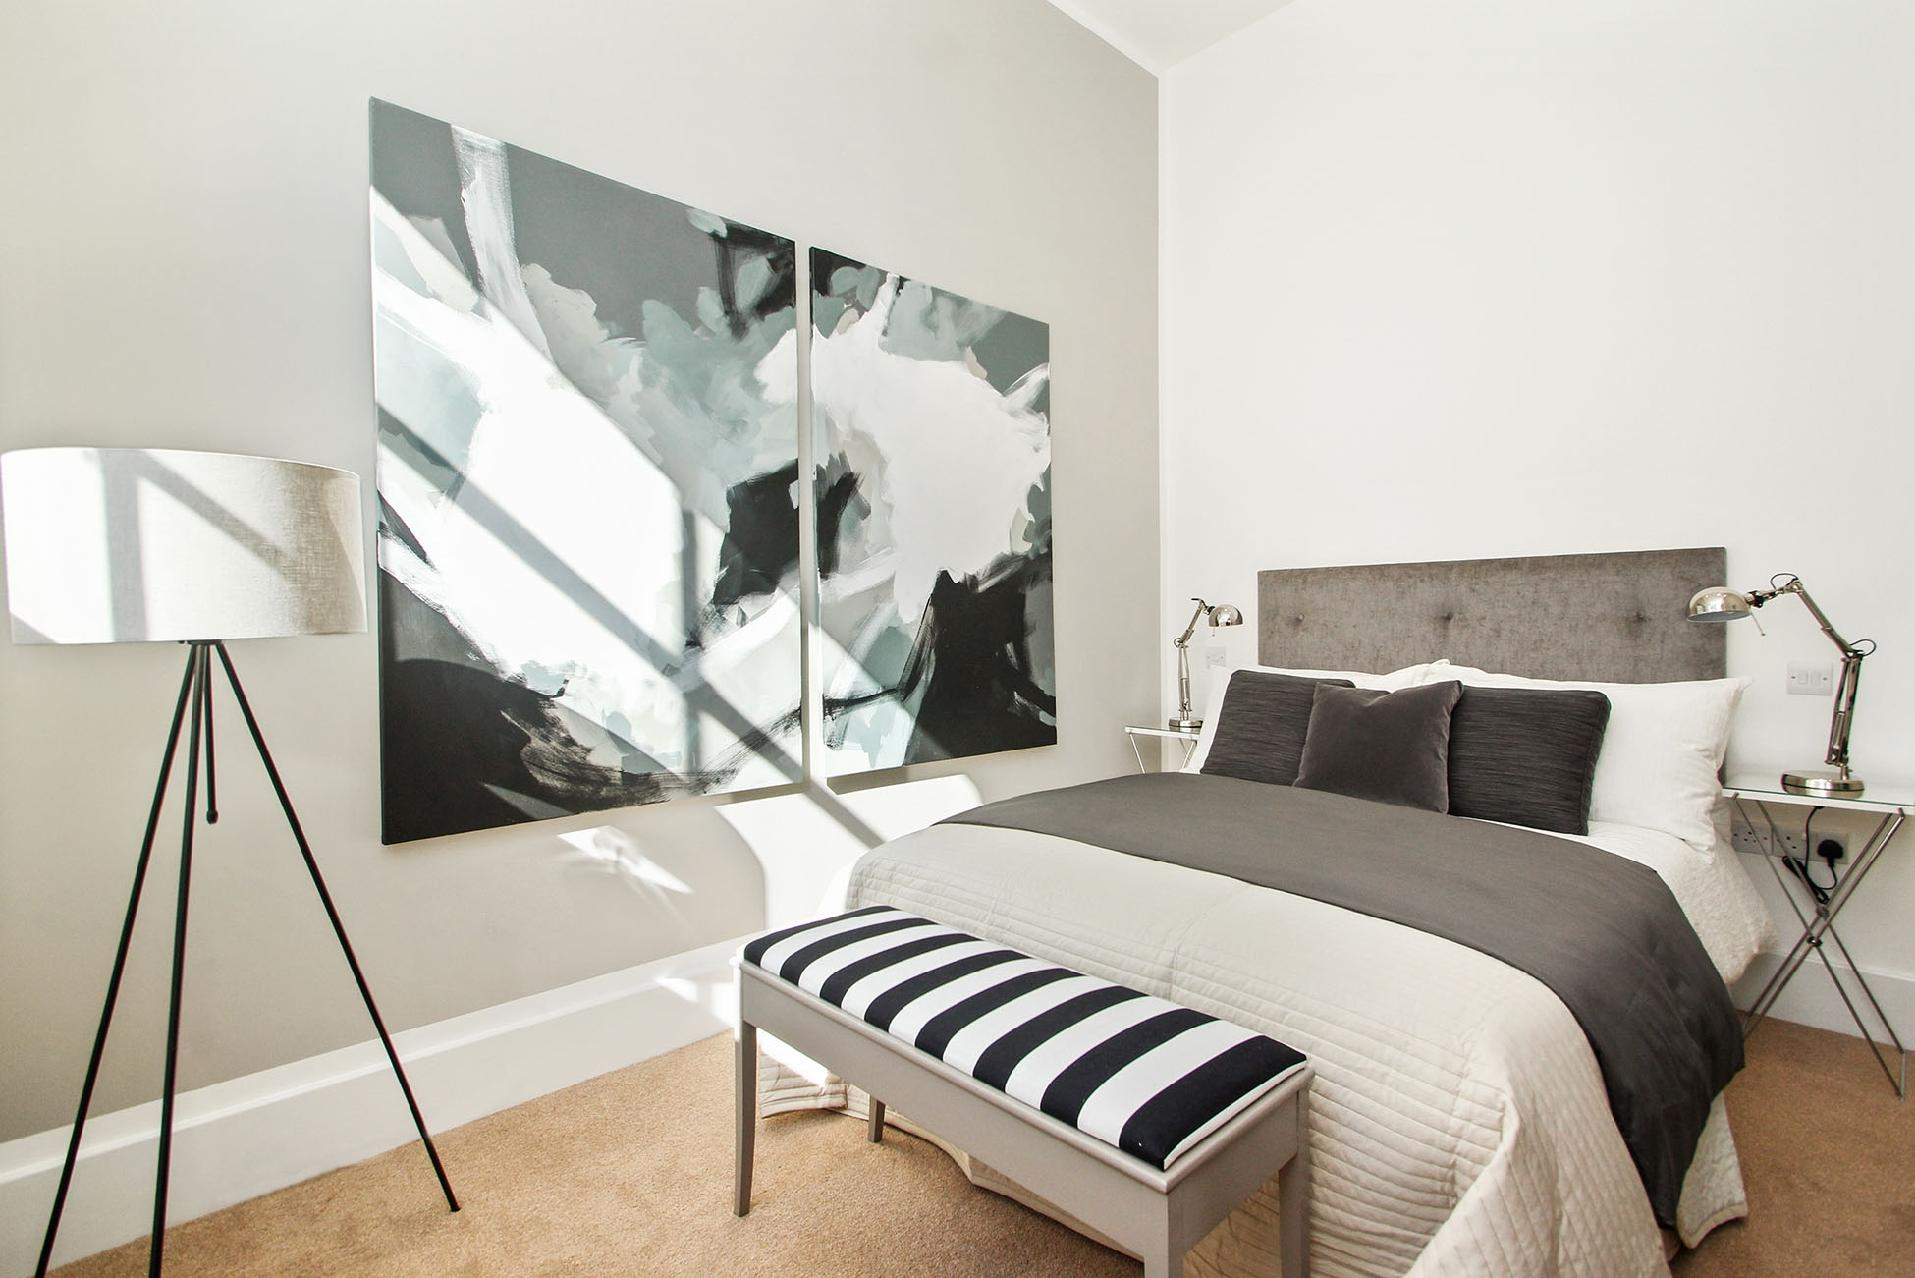 2 Bedroom Apartment To Rent In Fashion Apartments Grafton Road London Nw5 Bep140327 06 Israelway